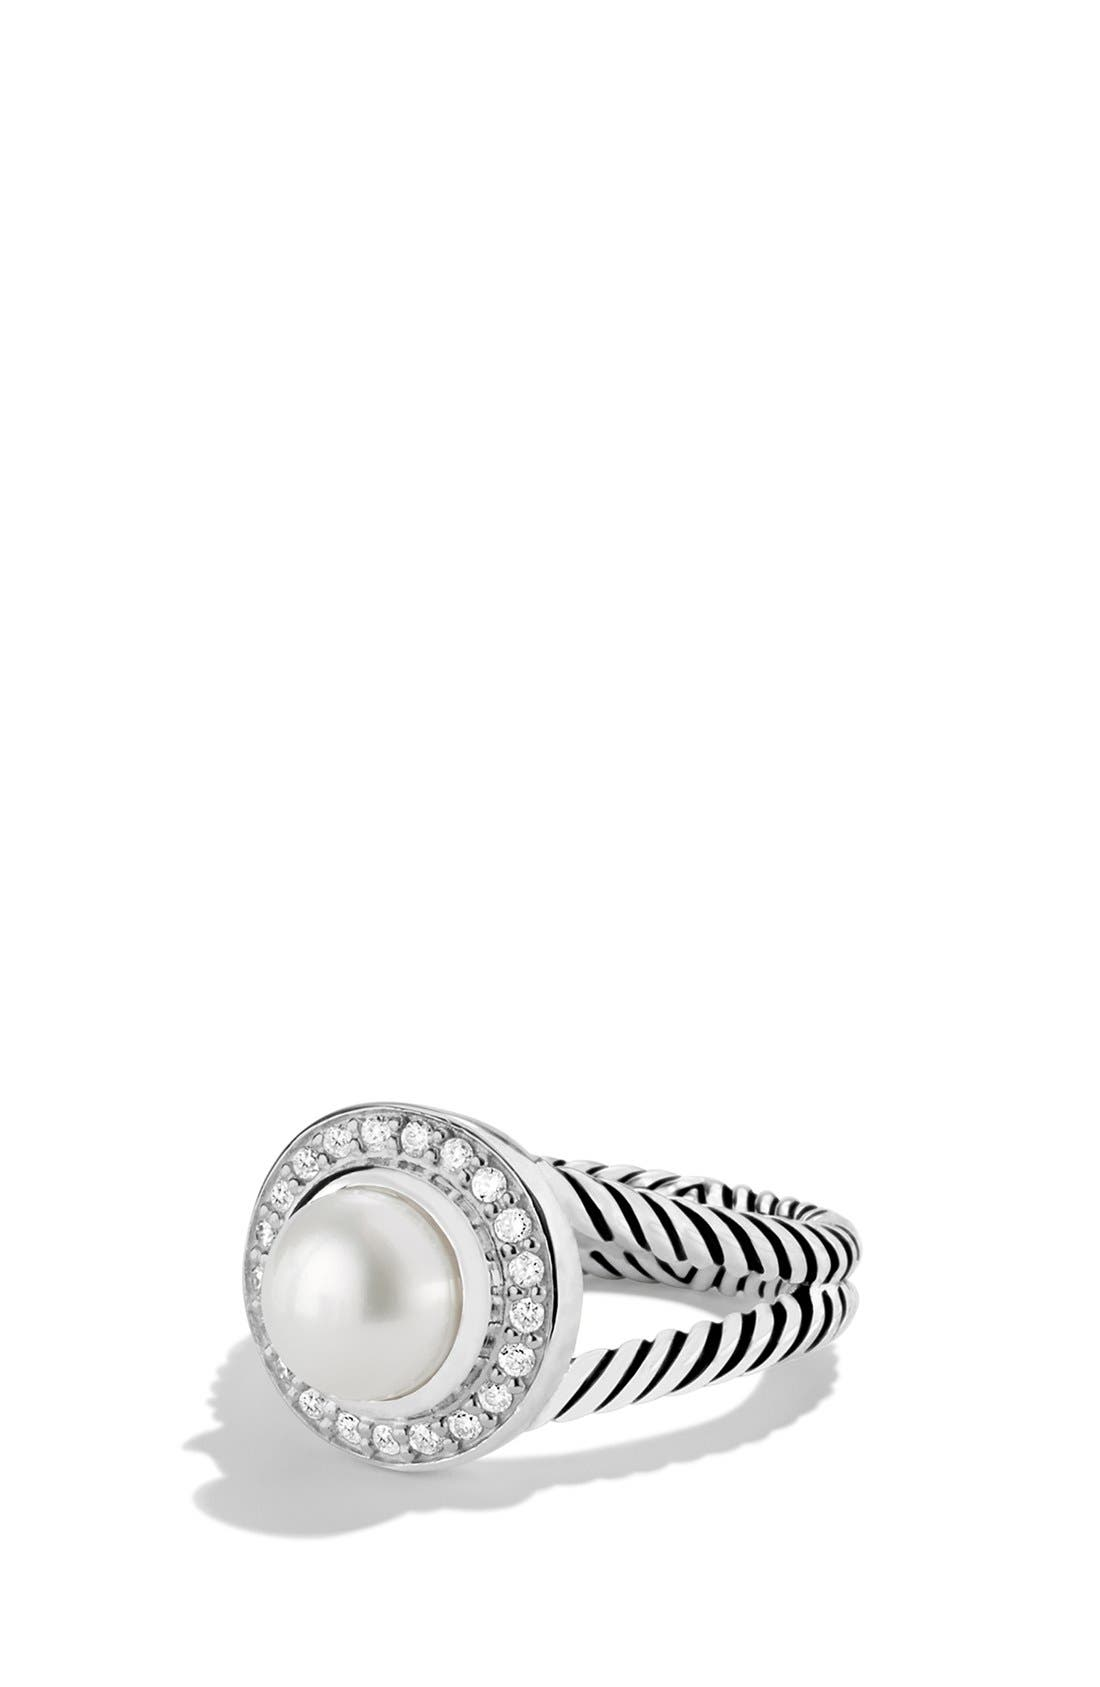 Main Image - David Yurman 'Petite Cerise' Ring with Pearl and Diamonds